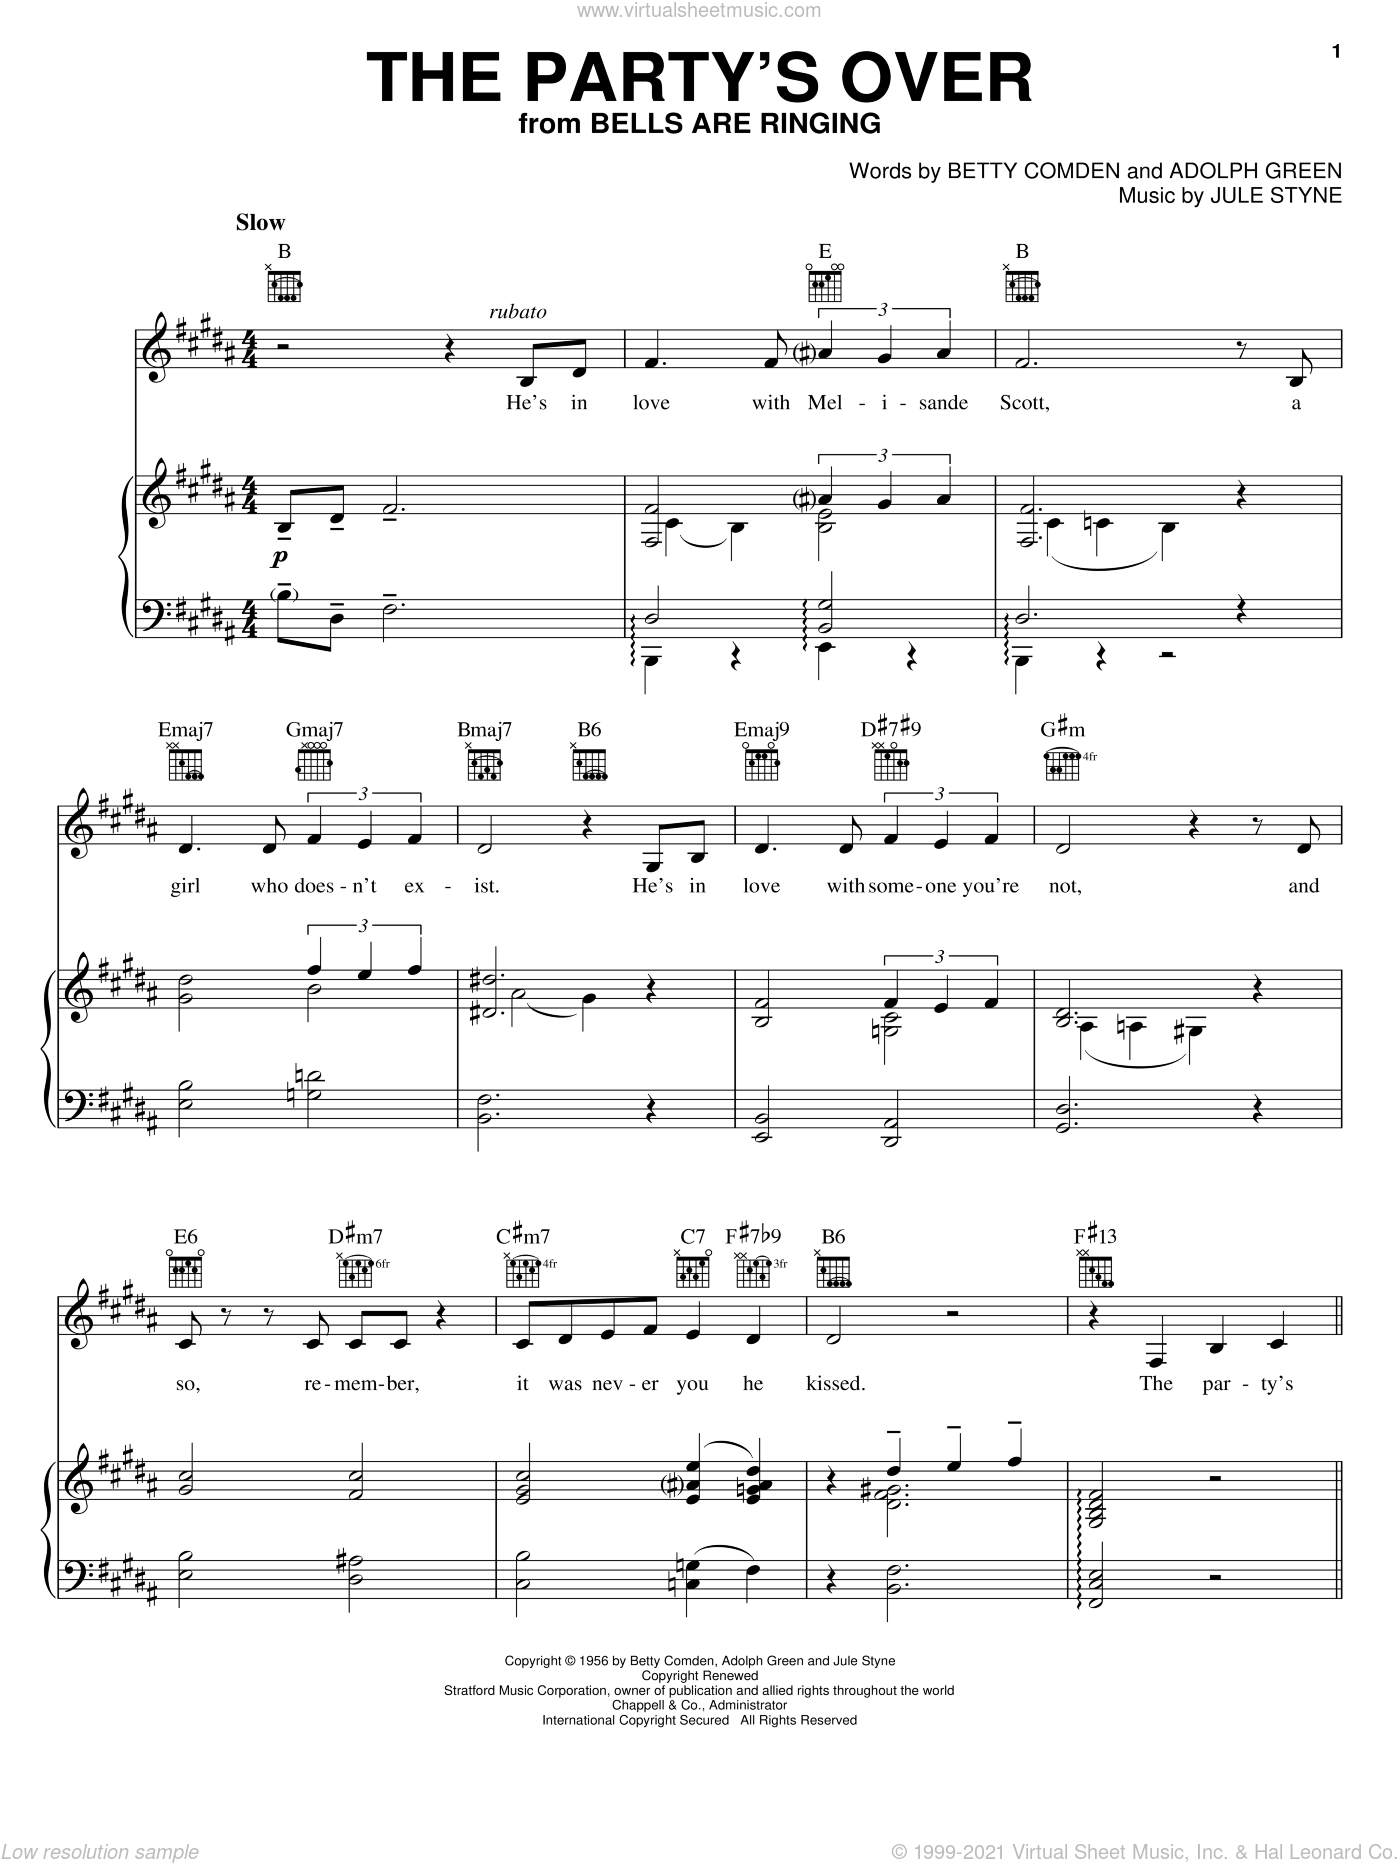 The Party's Over sheet music for voice, piano or guitar by Jule Styne, Adolph Green and Betty Comden, intermediate skill level